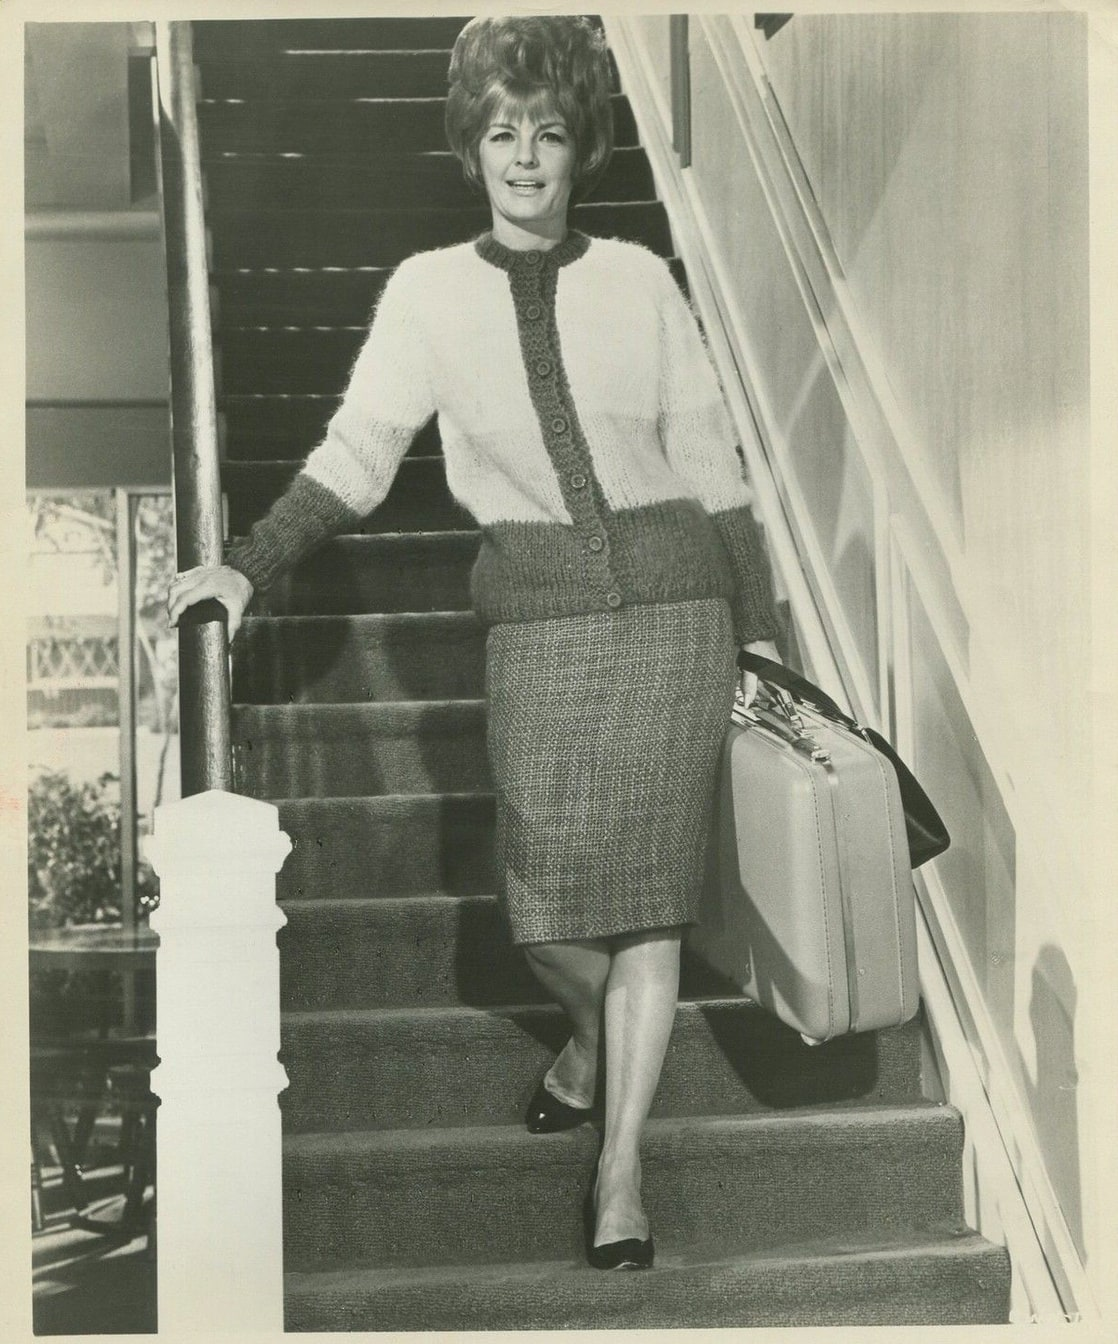 marjorie lord photo gallery